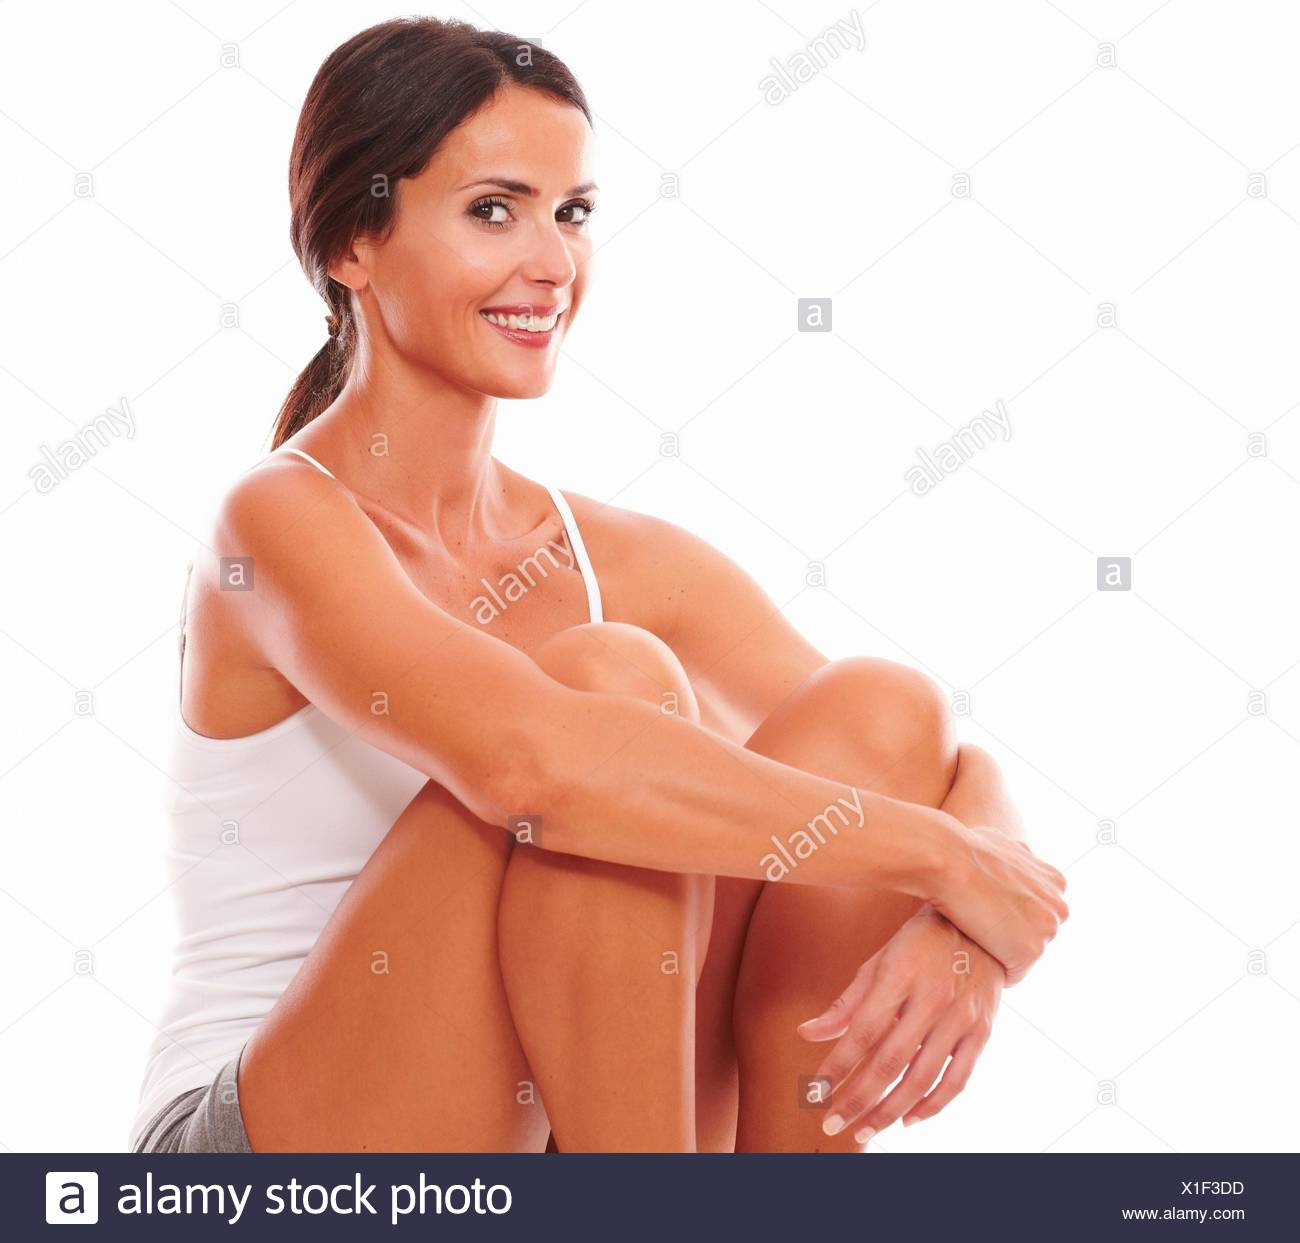 Lovely sporty woman baring fair skin while looking at you on isolated background. - Stock Image